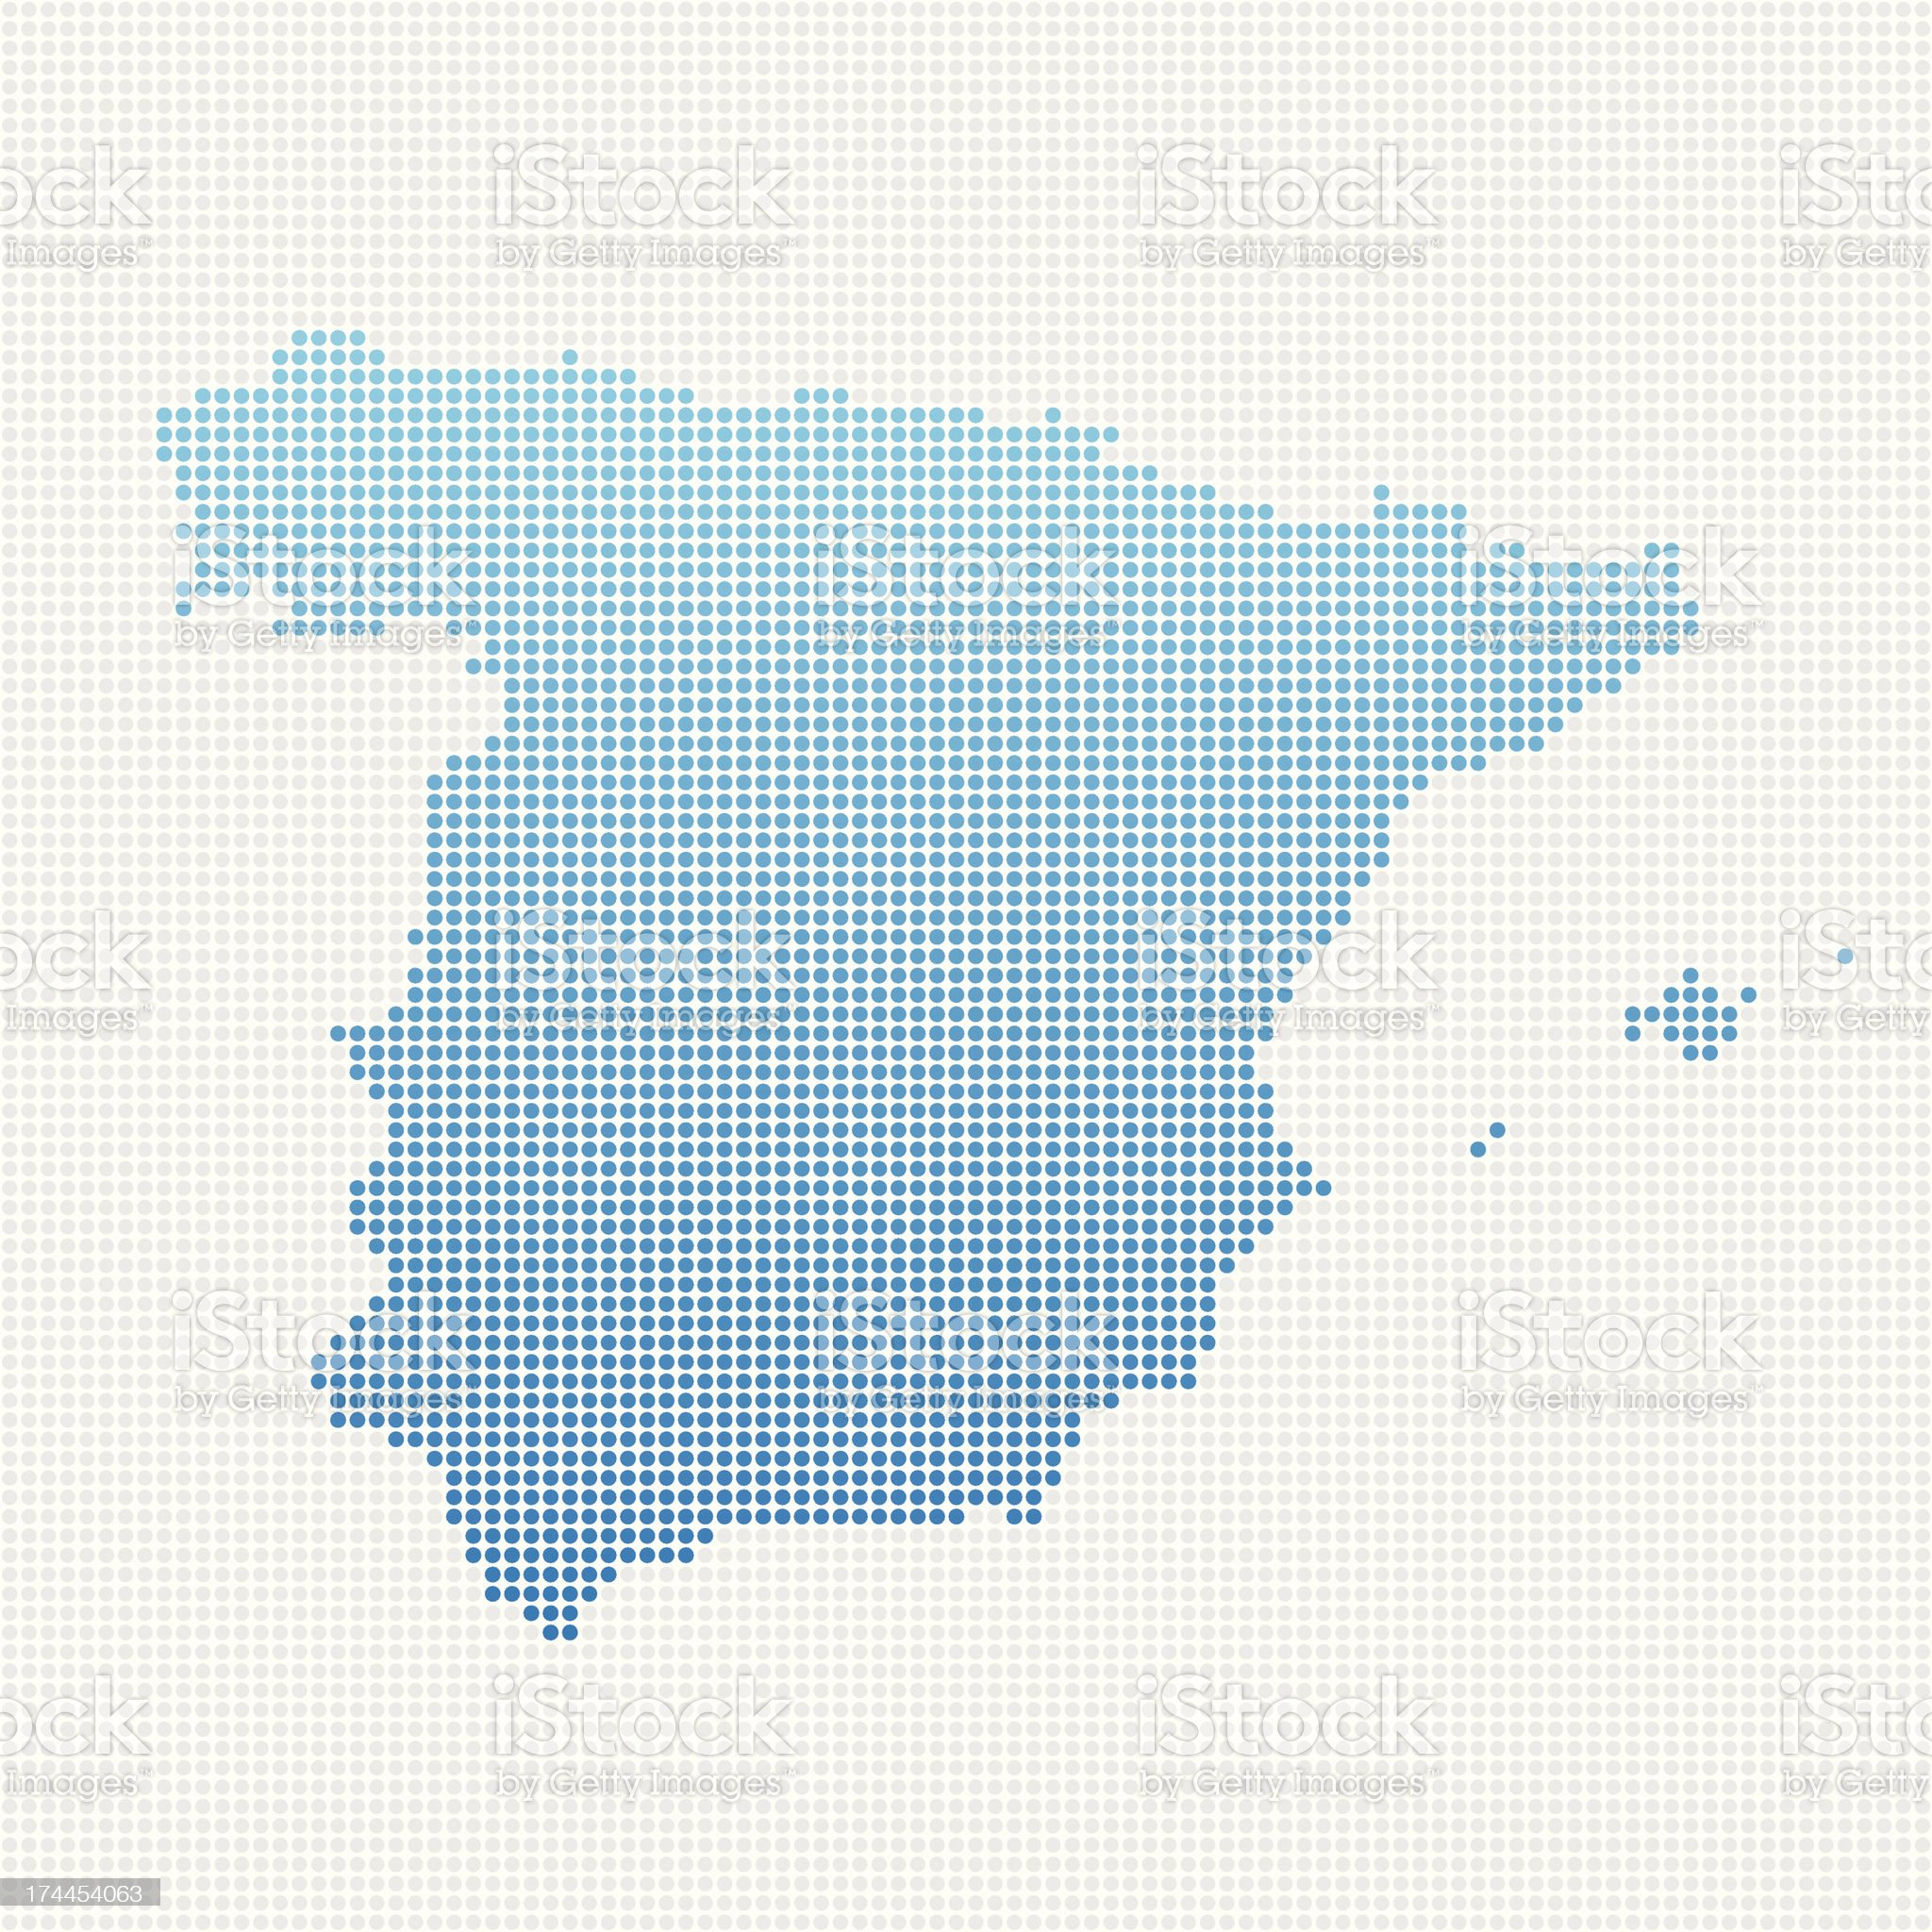 Spain Map Blue Dot Pattern royalty-free stock vector art